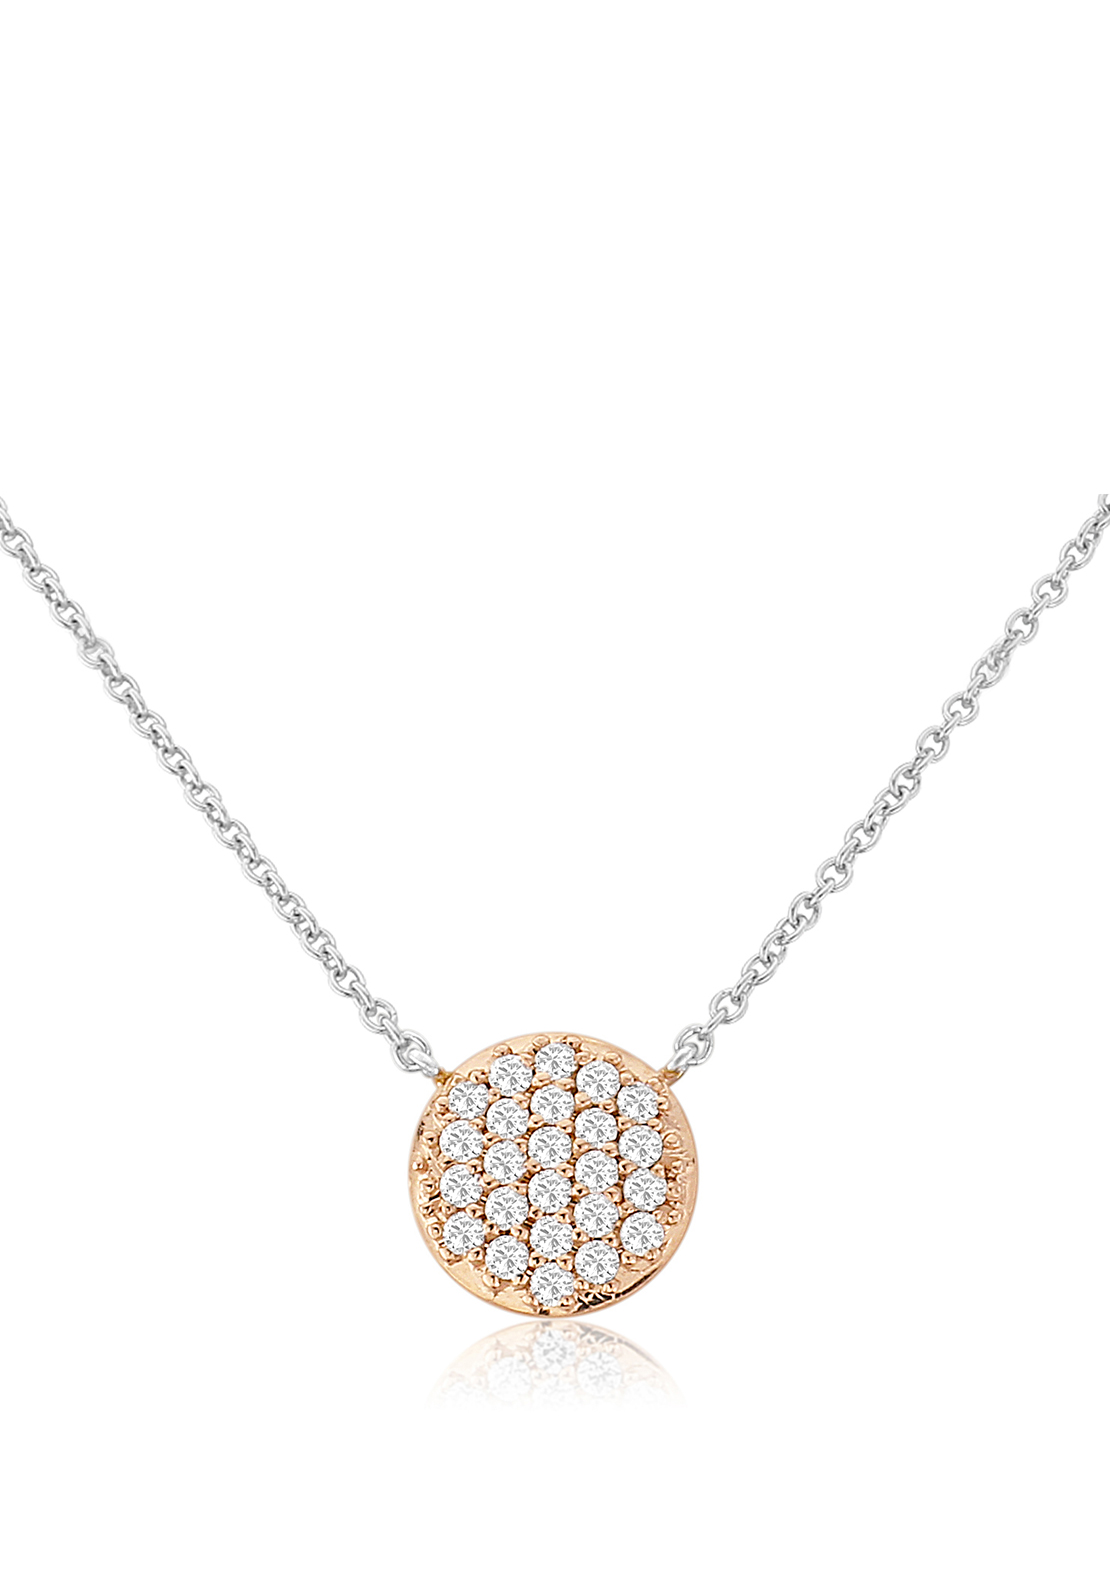 Waterford Crystal Pave Studded Rose Gold Pendant Necklace, Silver